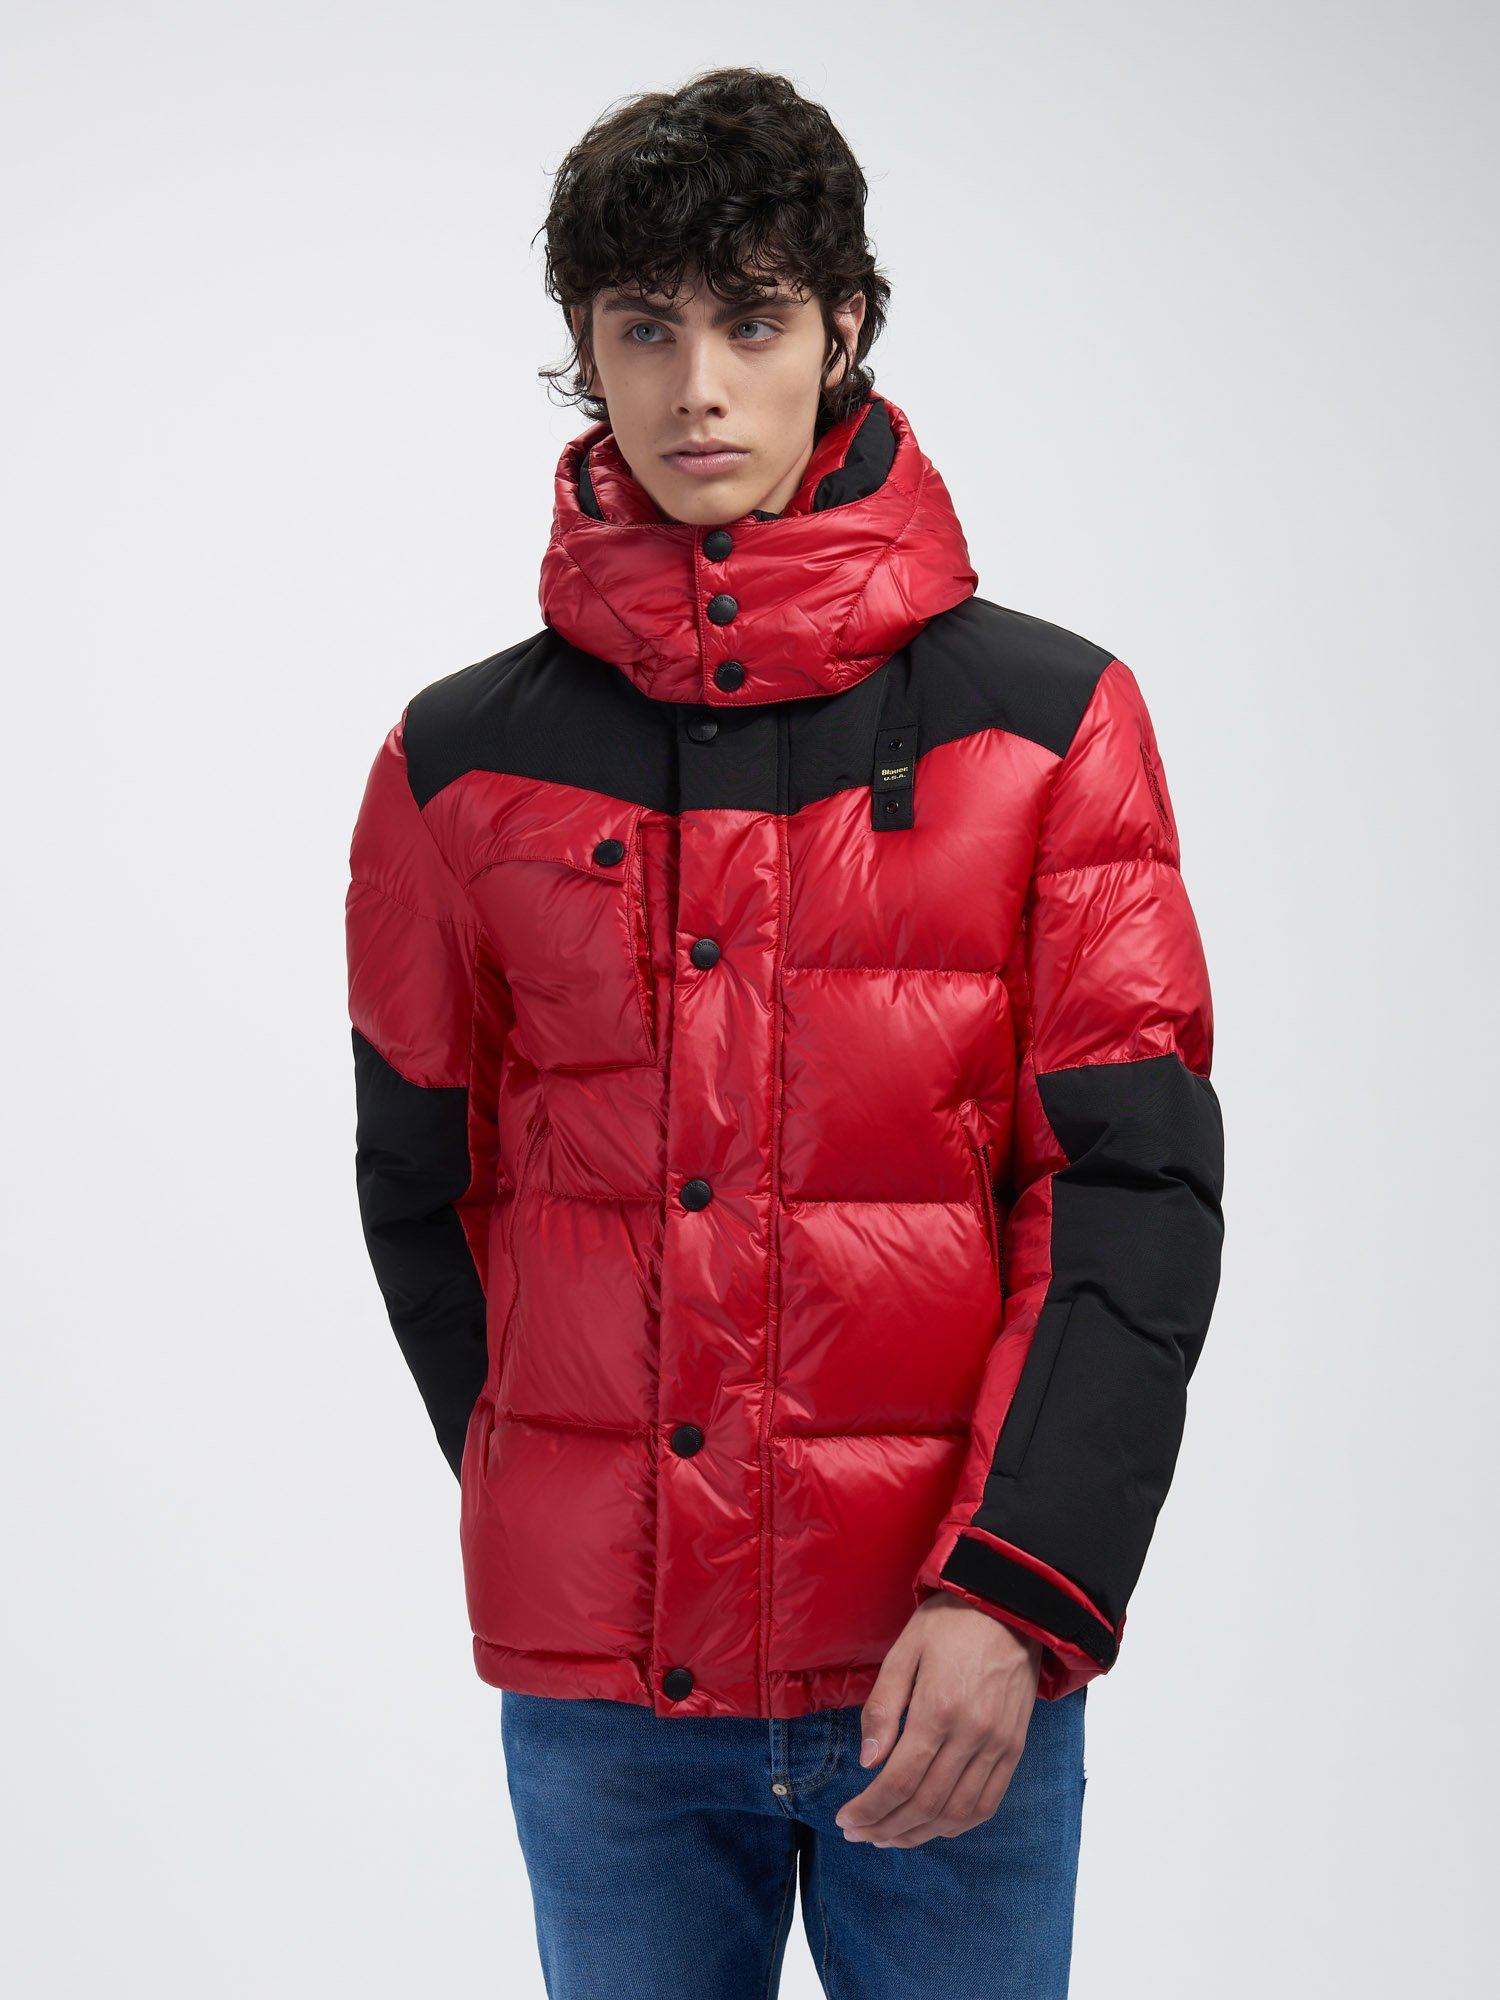 Blauer - ARTHUR DOWN JACKET IN SHINY NYLON AND TASLAN - Red Bloode - Blauer